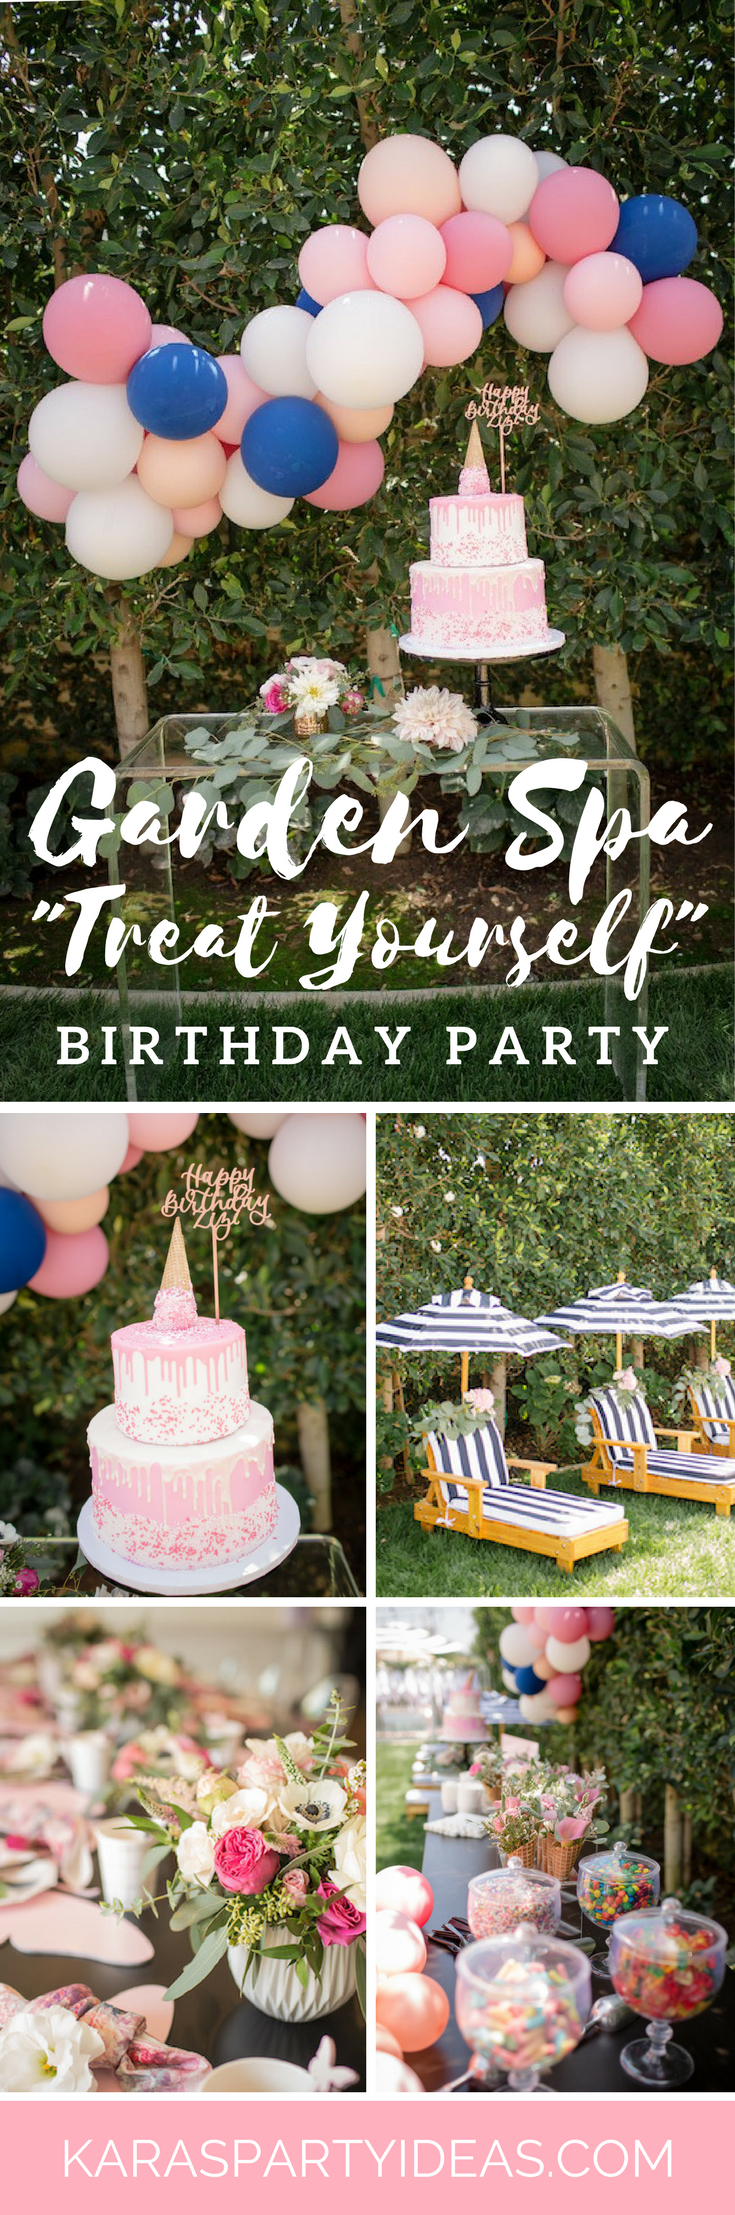 Garden Spa Treat Yourself Birthday Party via Kara's Party Ideas - KarasPartyIdeas.com